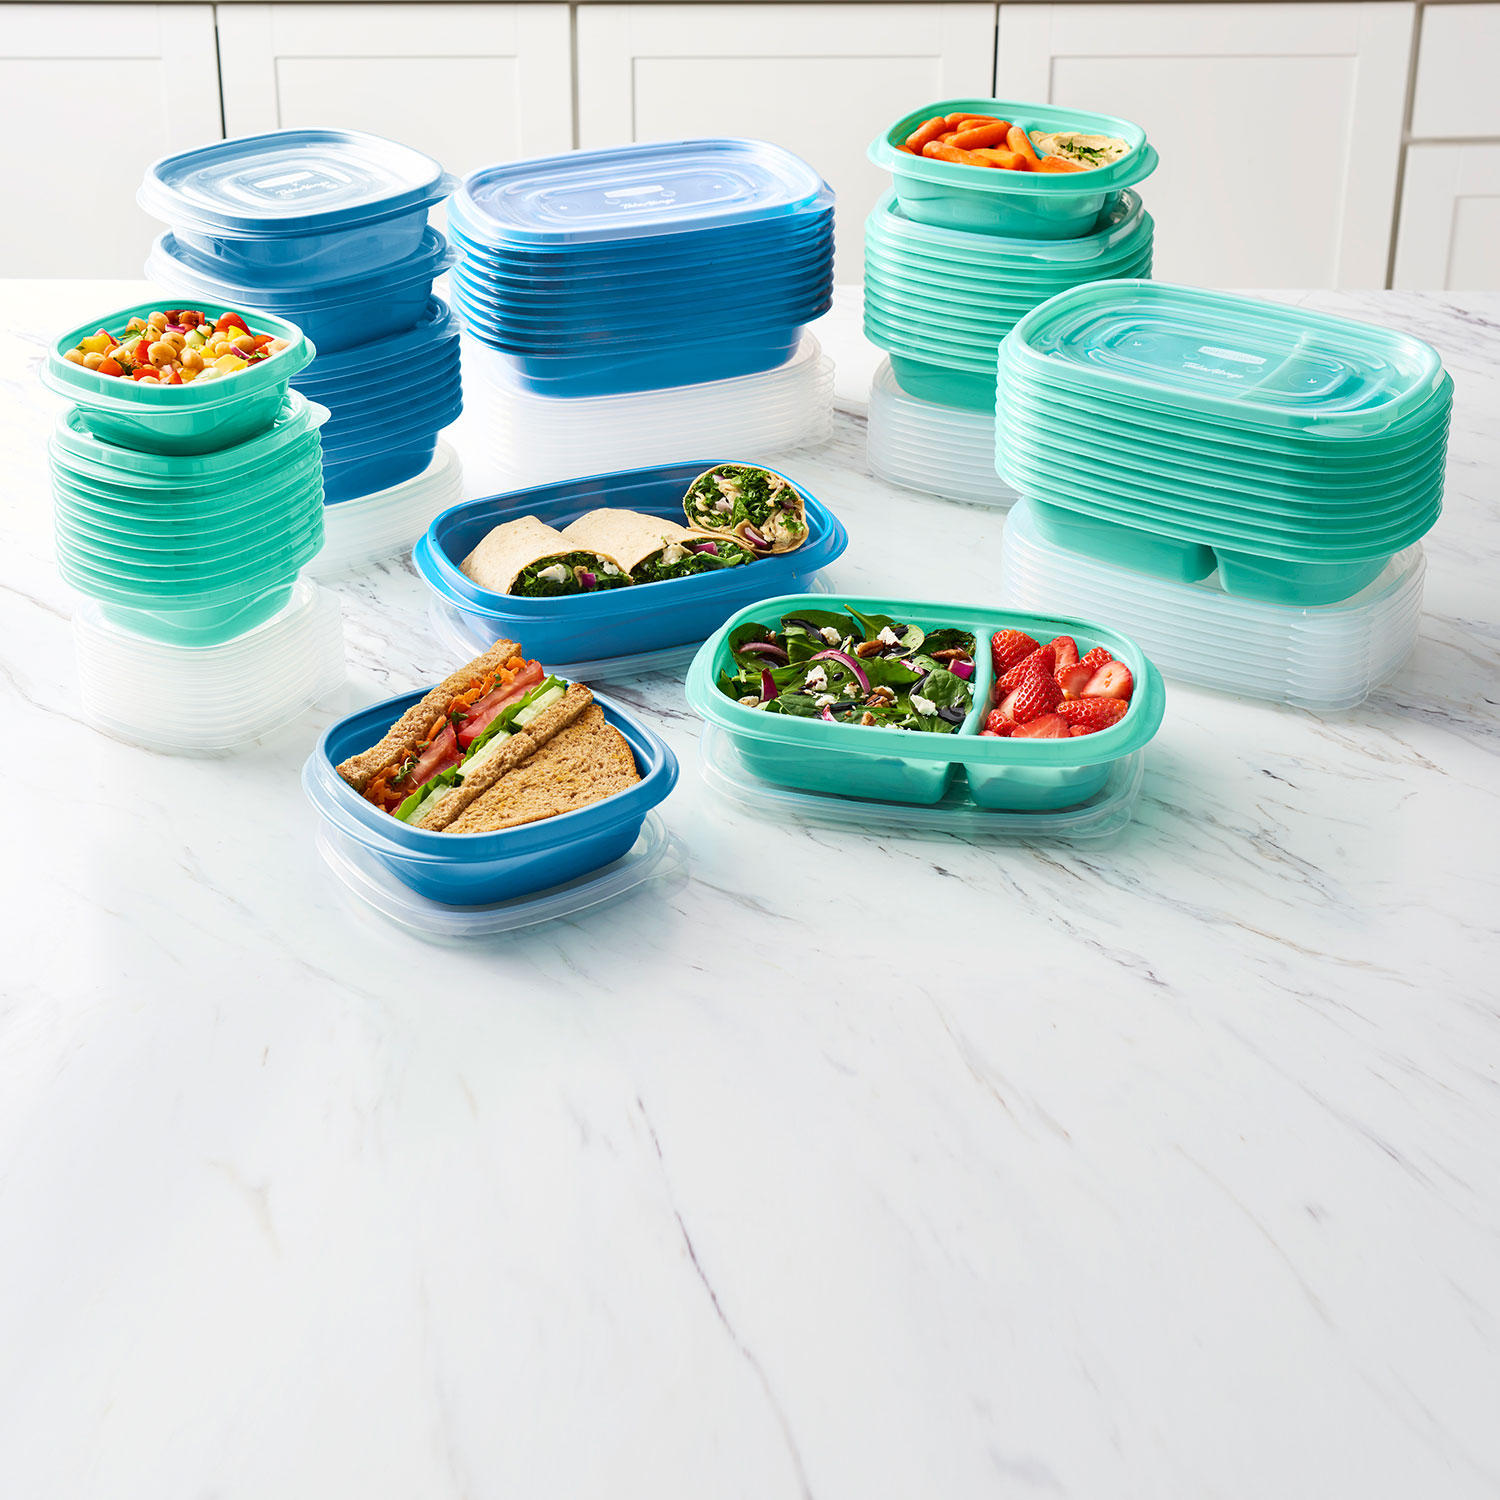 100-Piece Rubbermaid Meal Prep Food Storage Containers Set